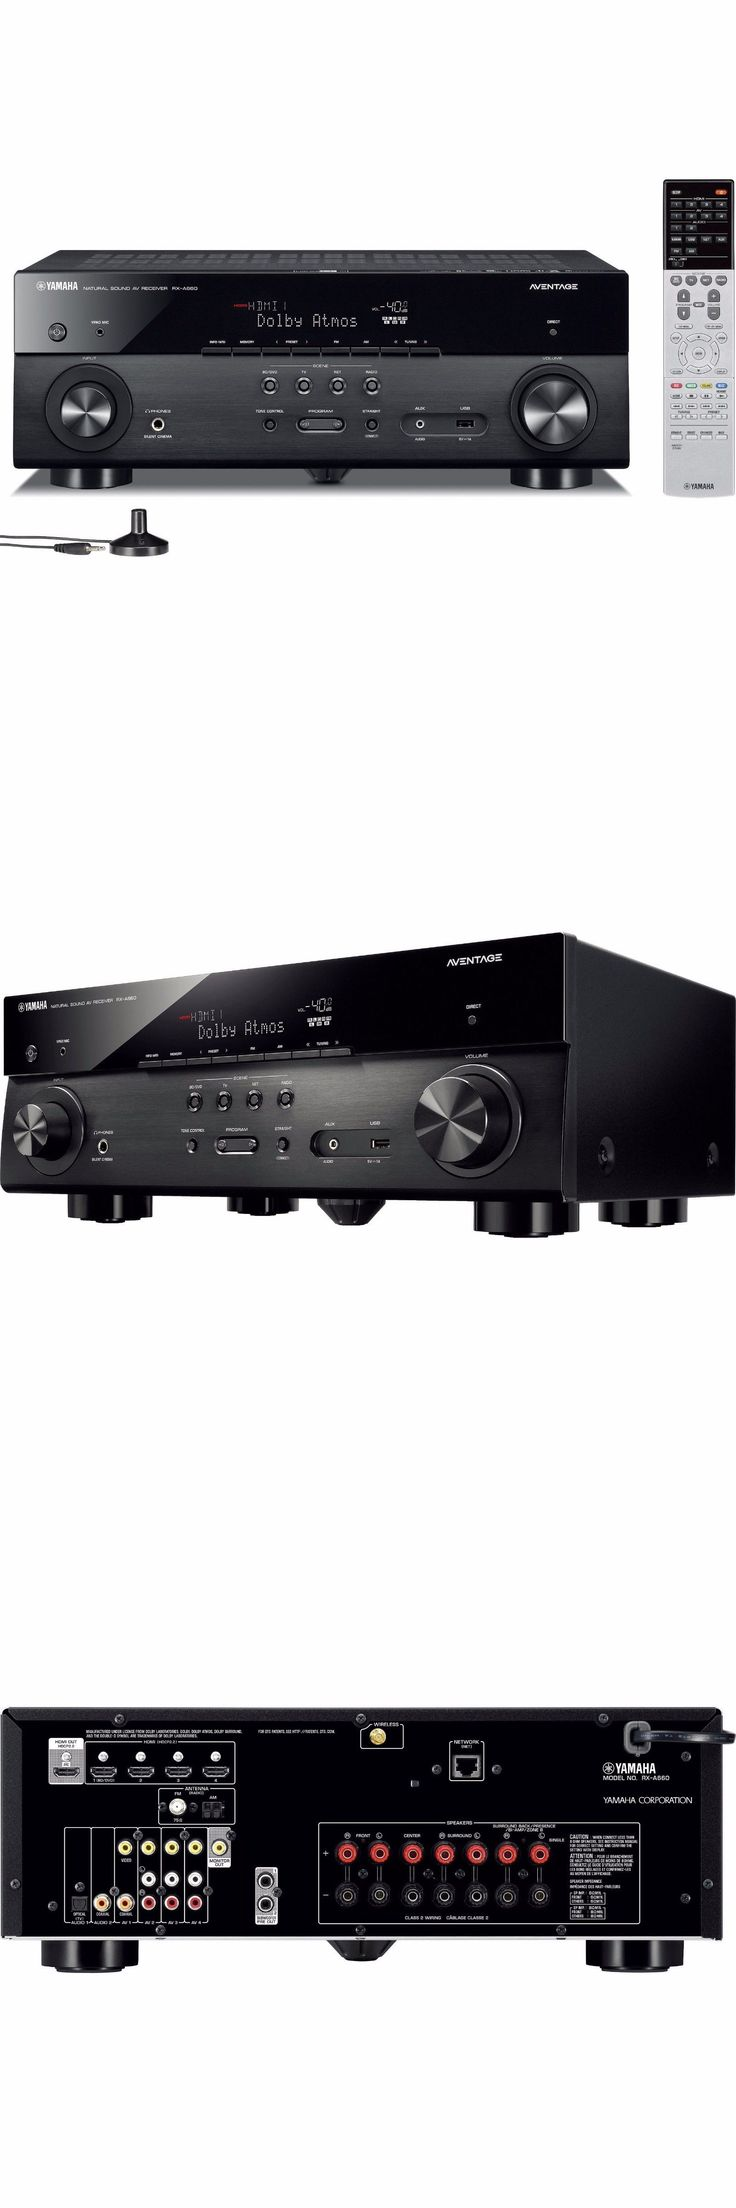 Home Theater Receivers: Yamaha Aventage Rx-A660bl 7.2-Channel Network A/V Receiver BUY IT NOW ONLY: $499.97